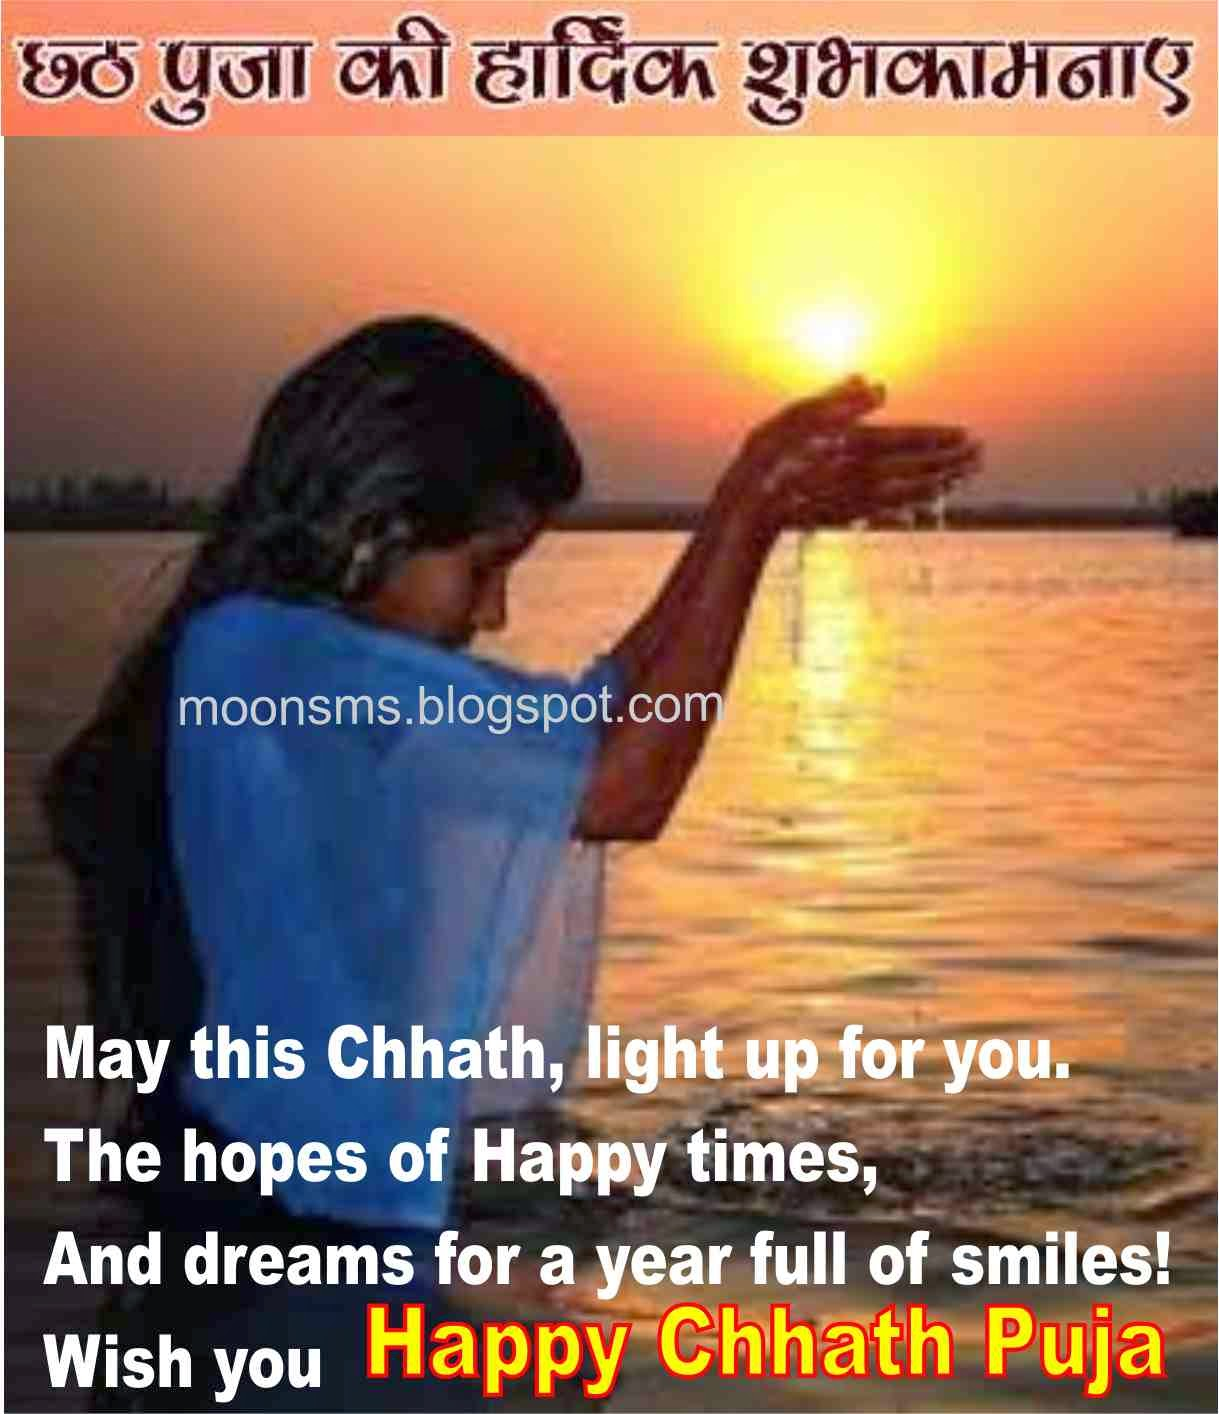 Chhtath puja image HD wallpaper Picture Photo Greeting with message